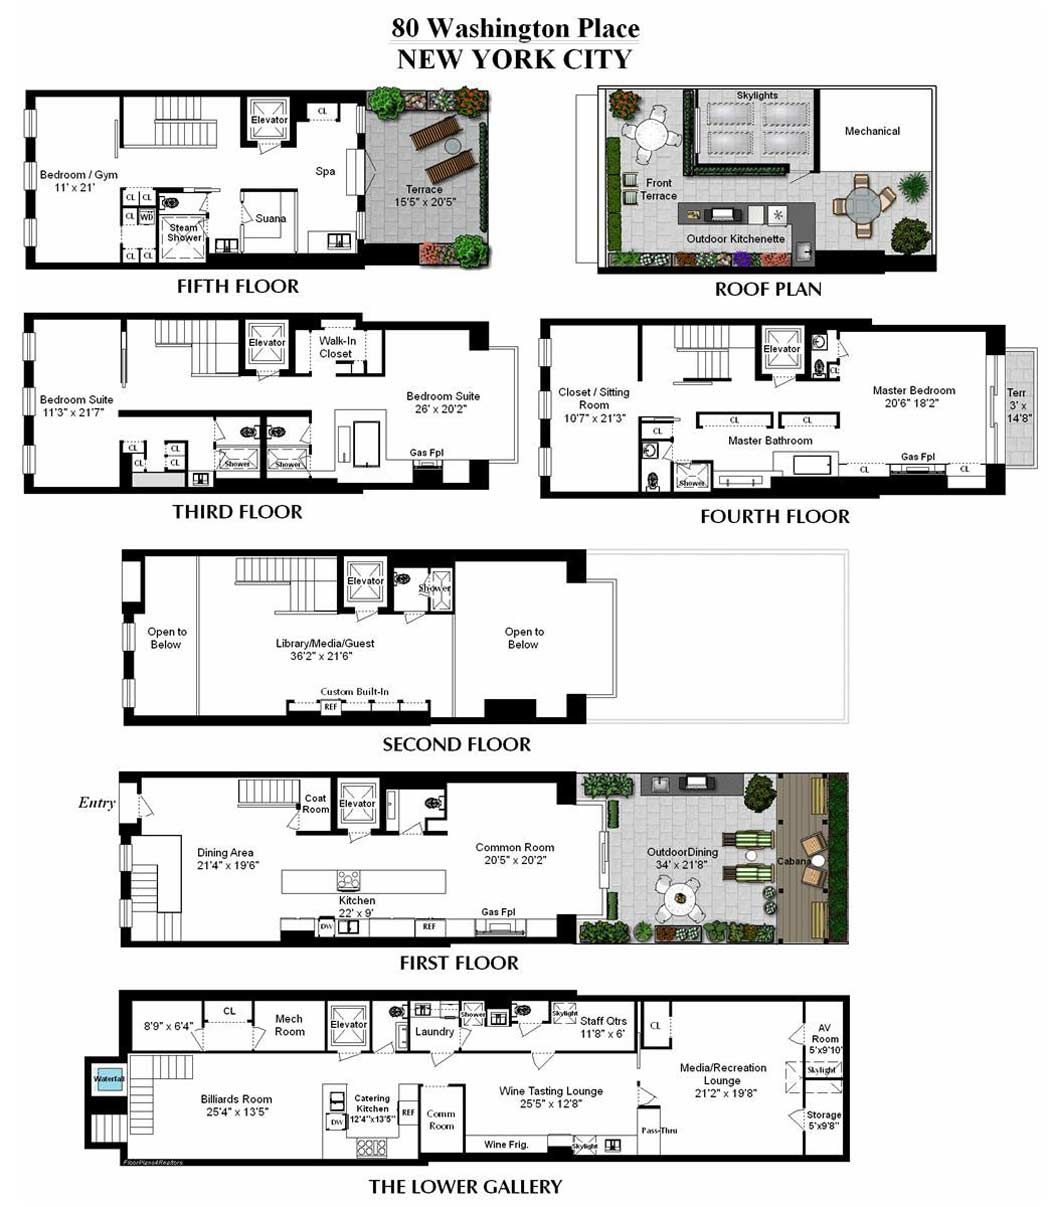 78 Best 1000 images about Floor Plans on Pinterest Nyc Clinton hill